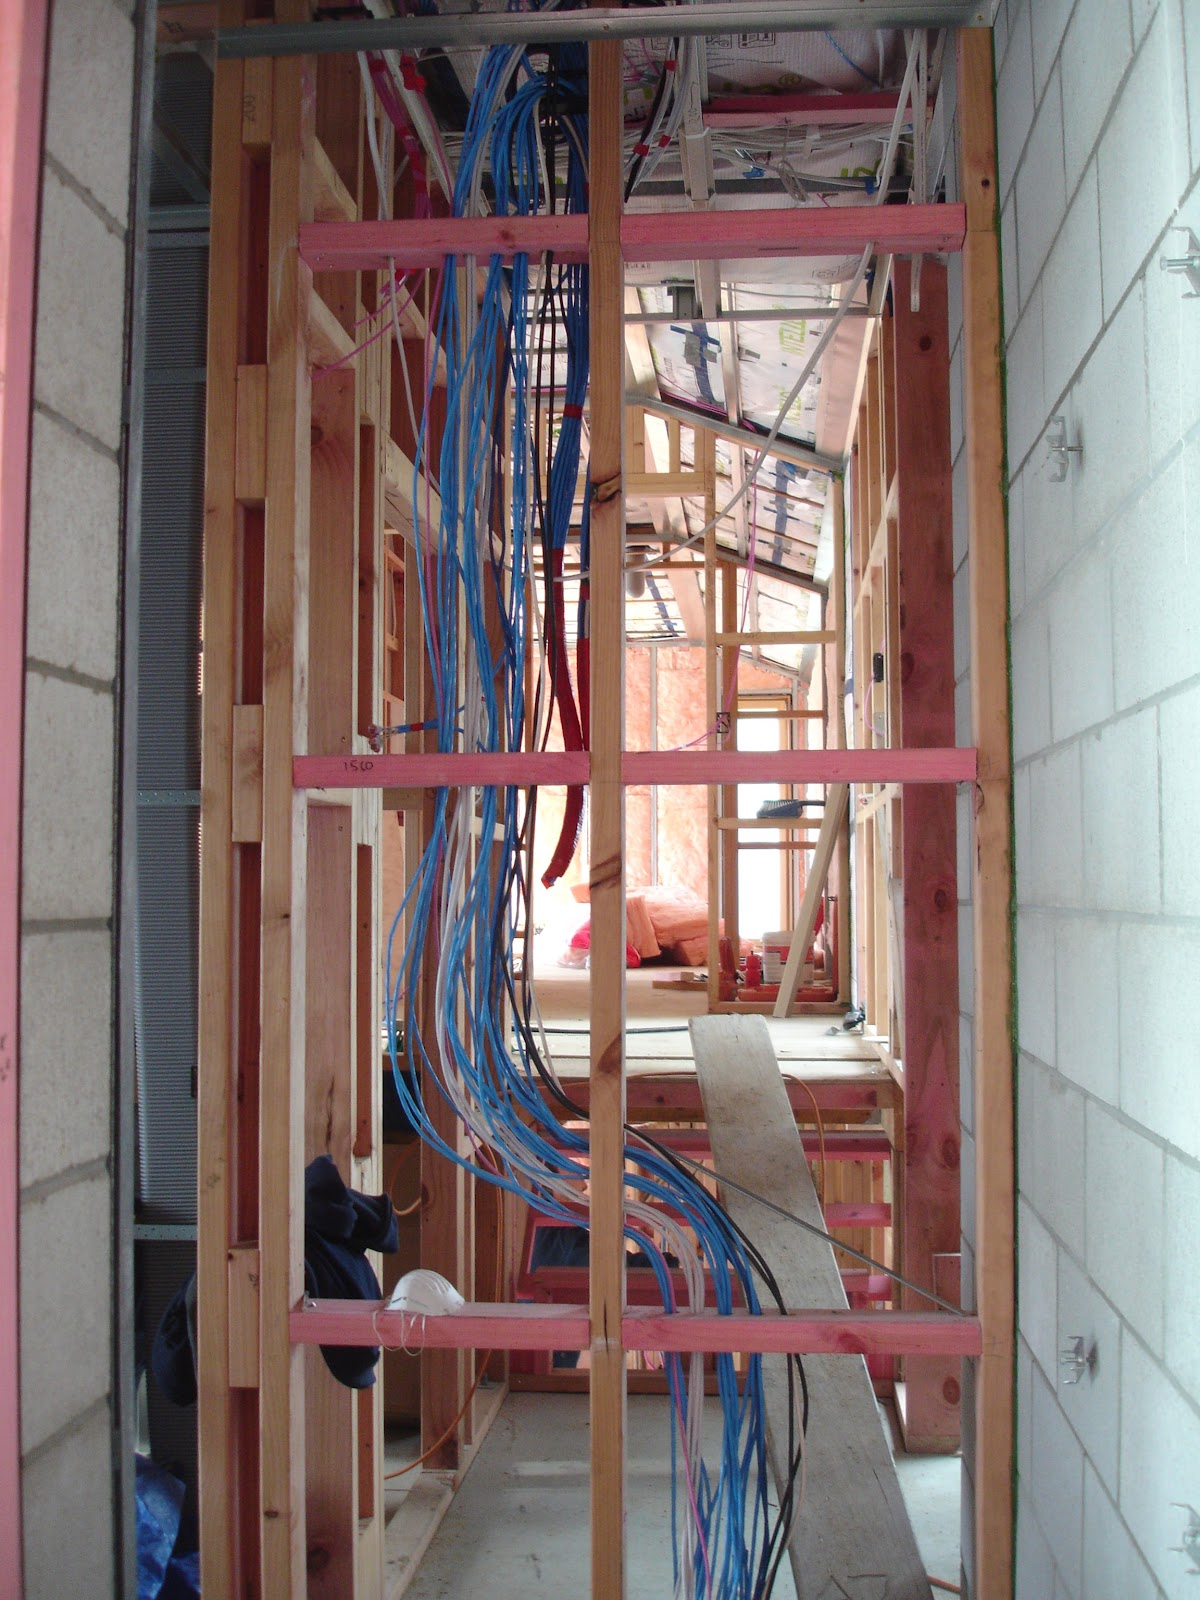 Wiring The New Zealands First Passive House Wires And Power Plug Protruding From A Wall During Rewiring By An For Is Being Threaded Through Walls Ceilings To Facilitate Needs Each Space Room Are Taped Surface They